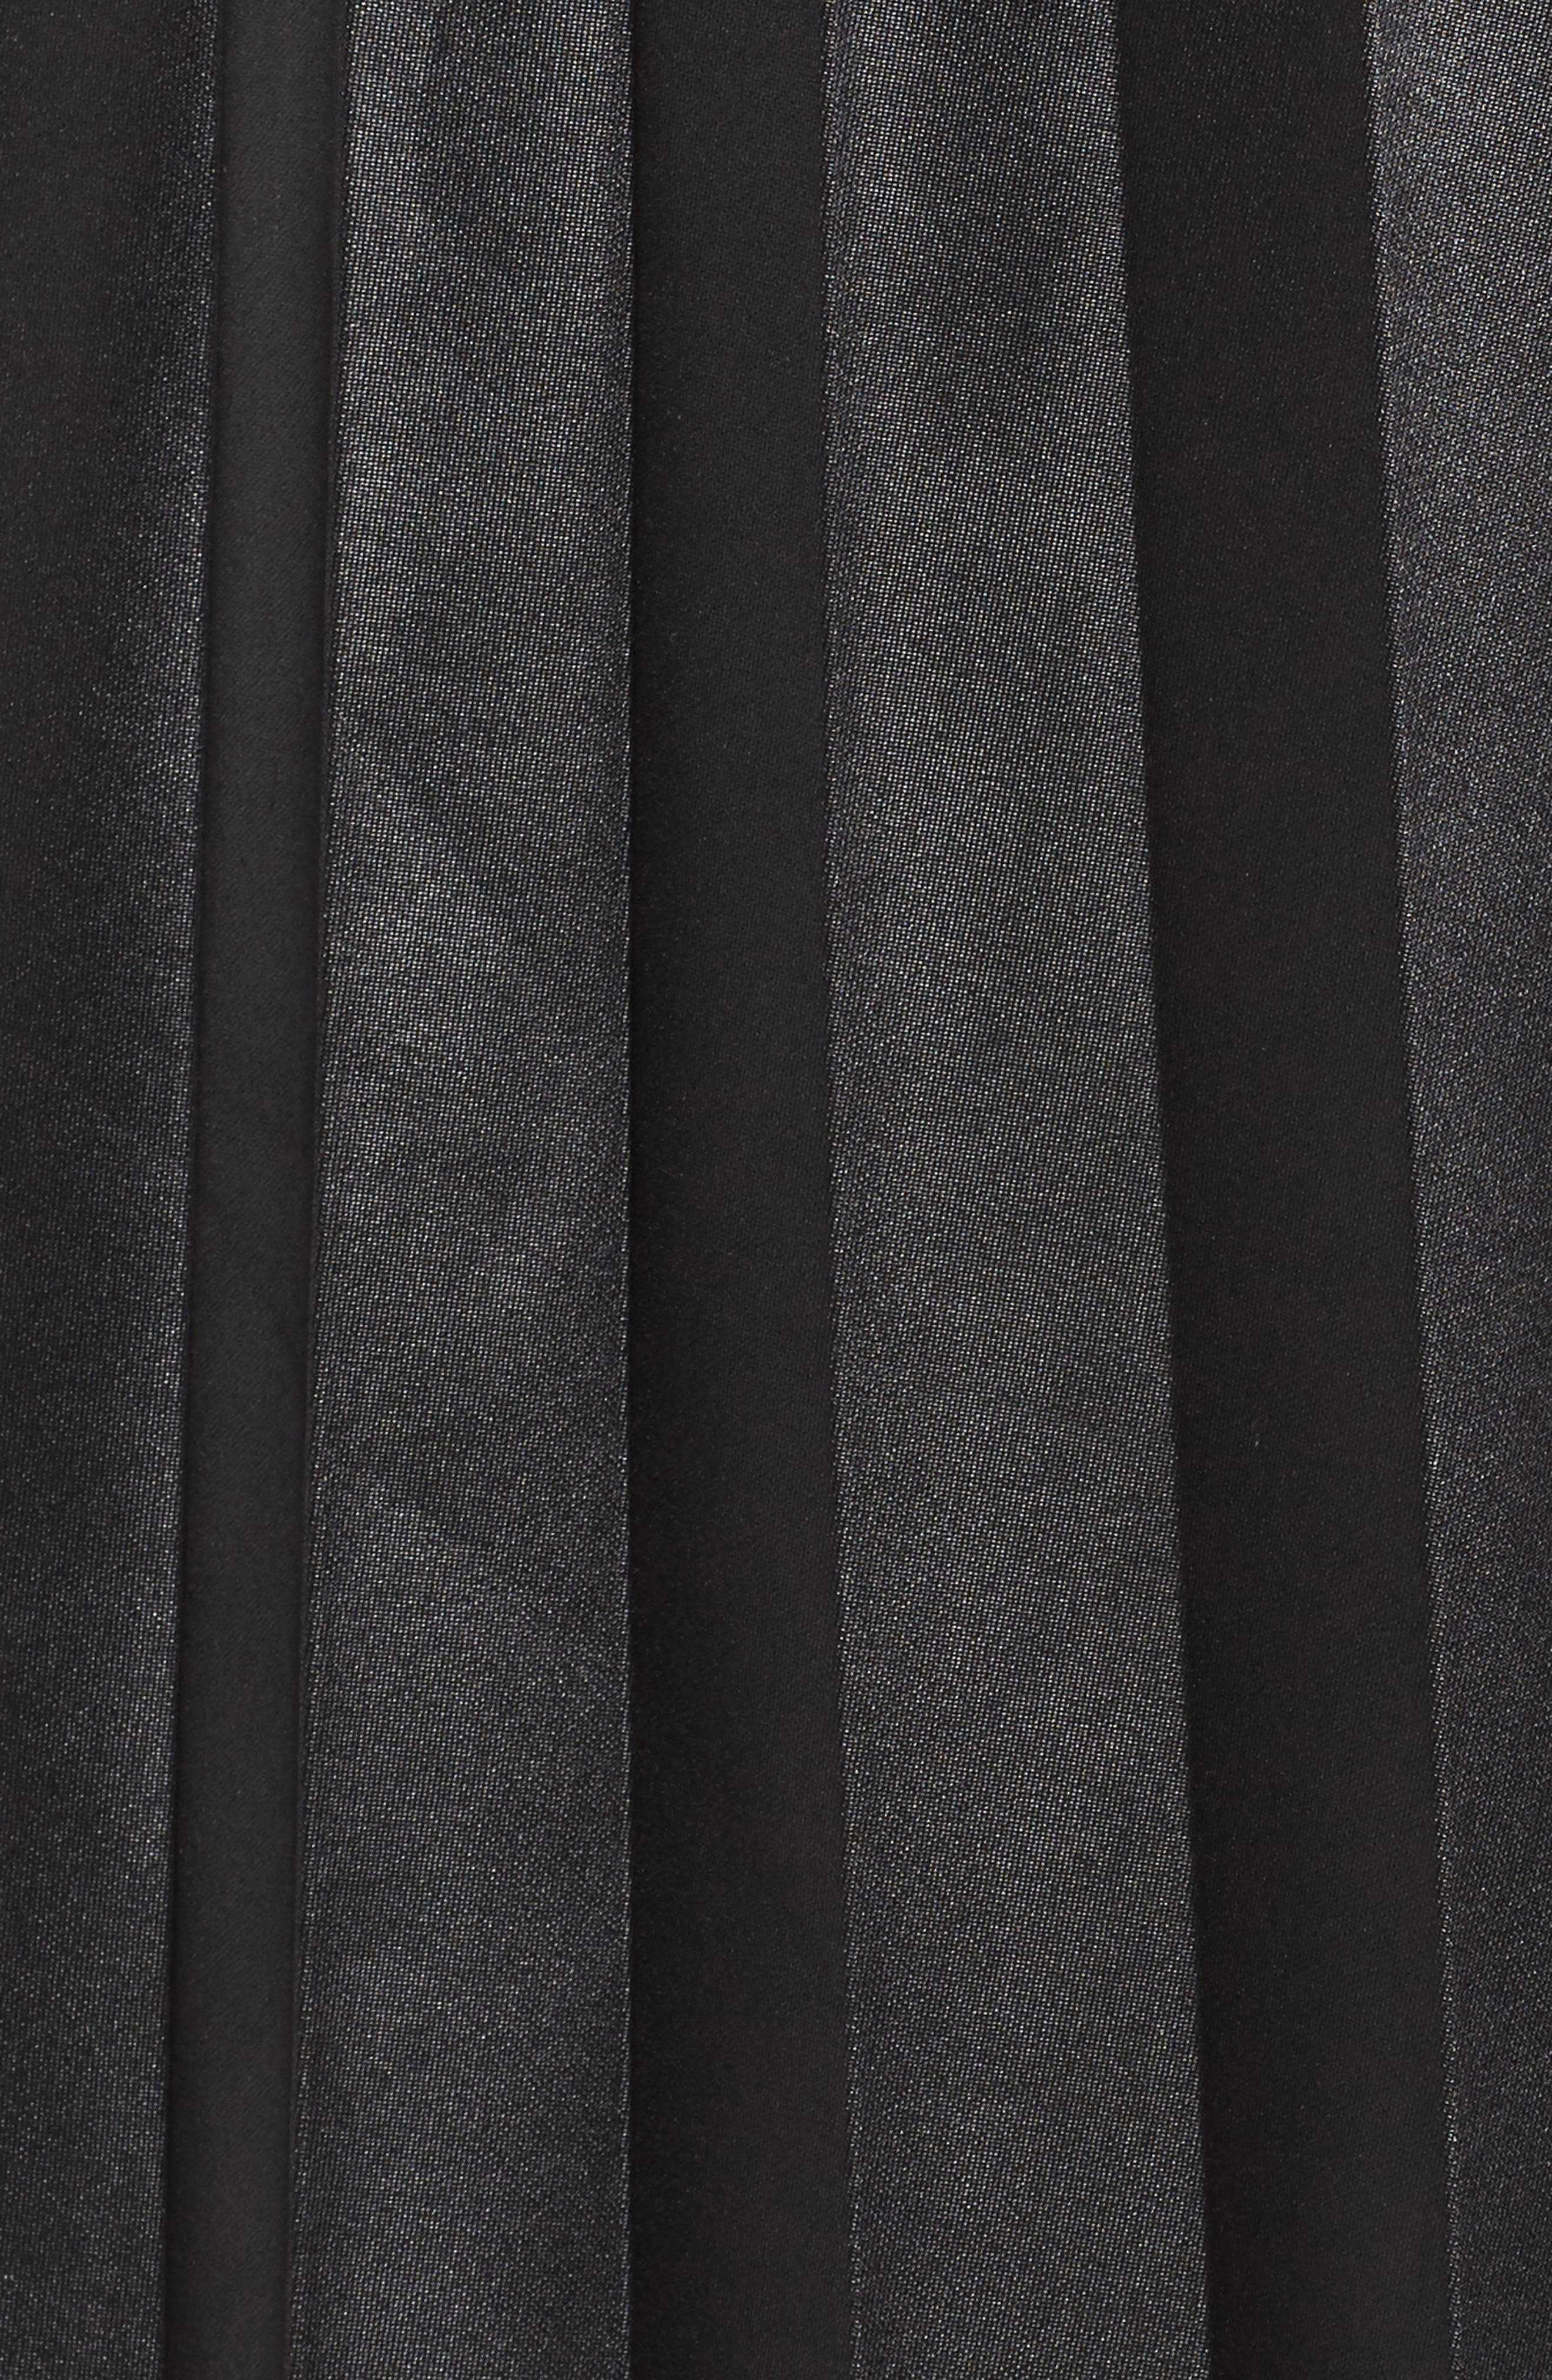 Coated Jersey Pleated Skirt,                             Alternate thumbnail 5, color,                             001